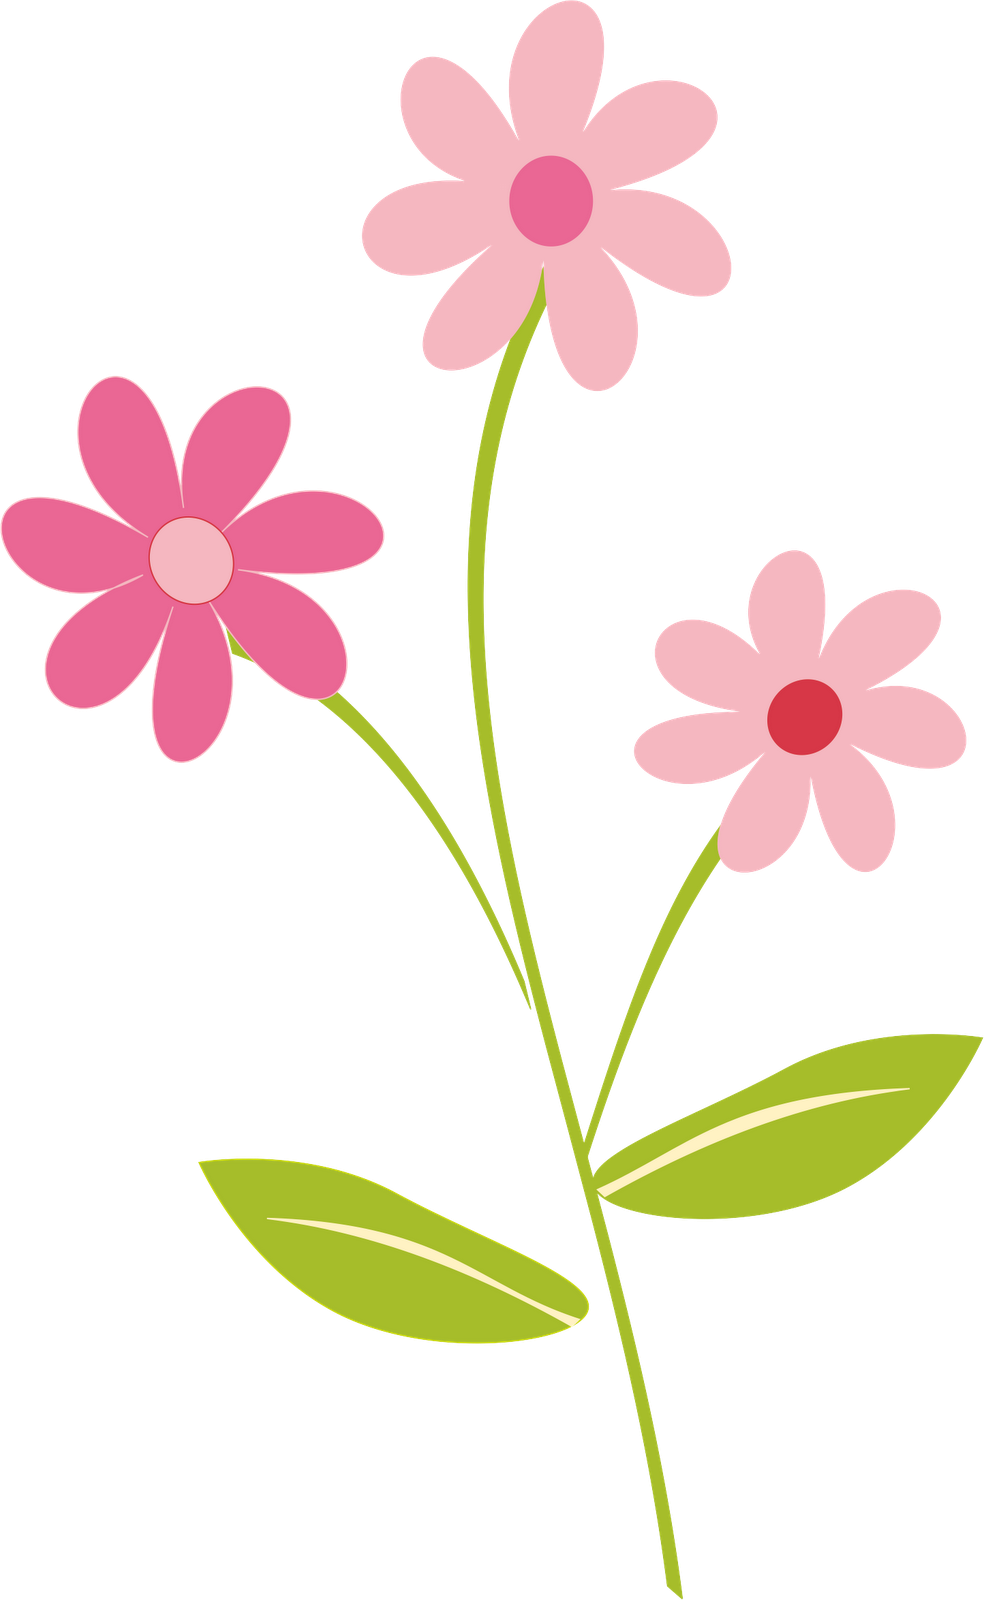 Daisy flower border clipart vector royalty free library Flower clipart images png - ClipartFest vector royalty free library